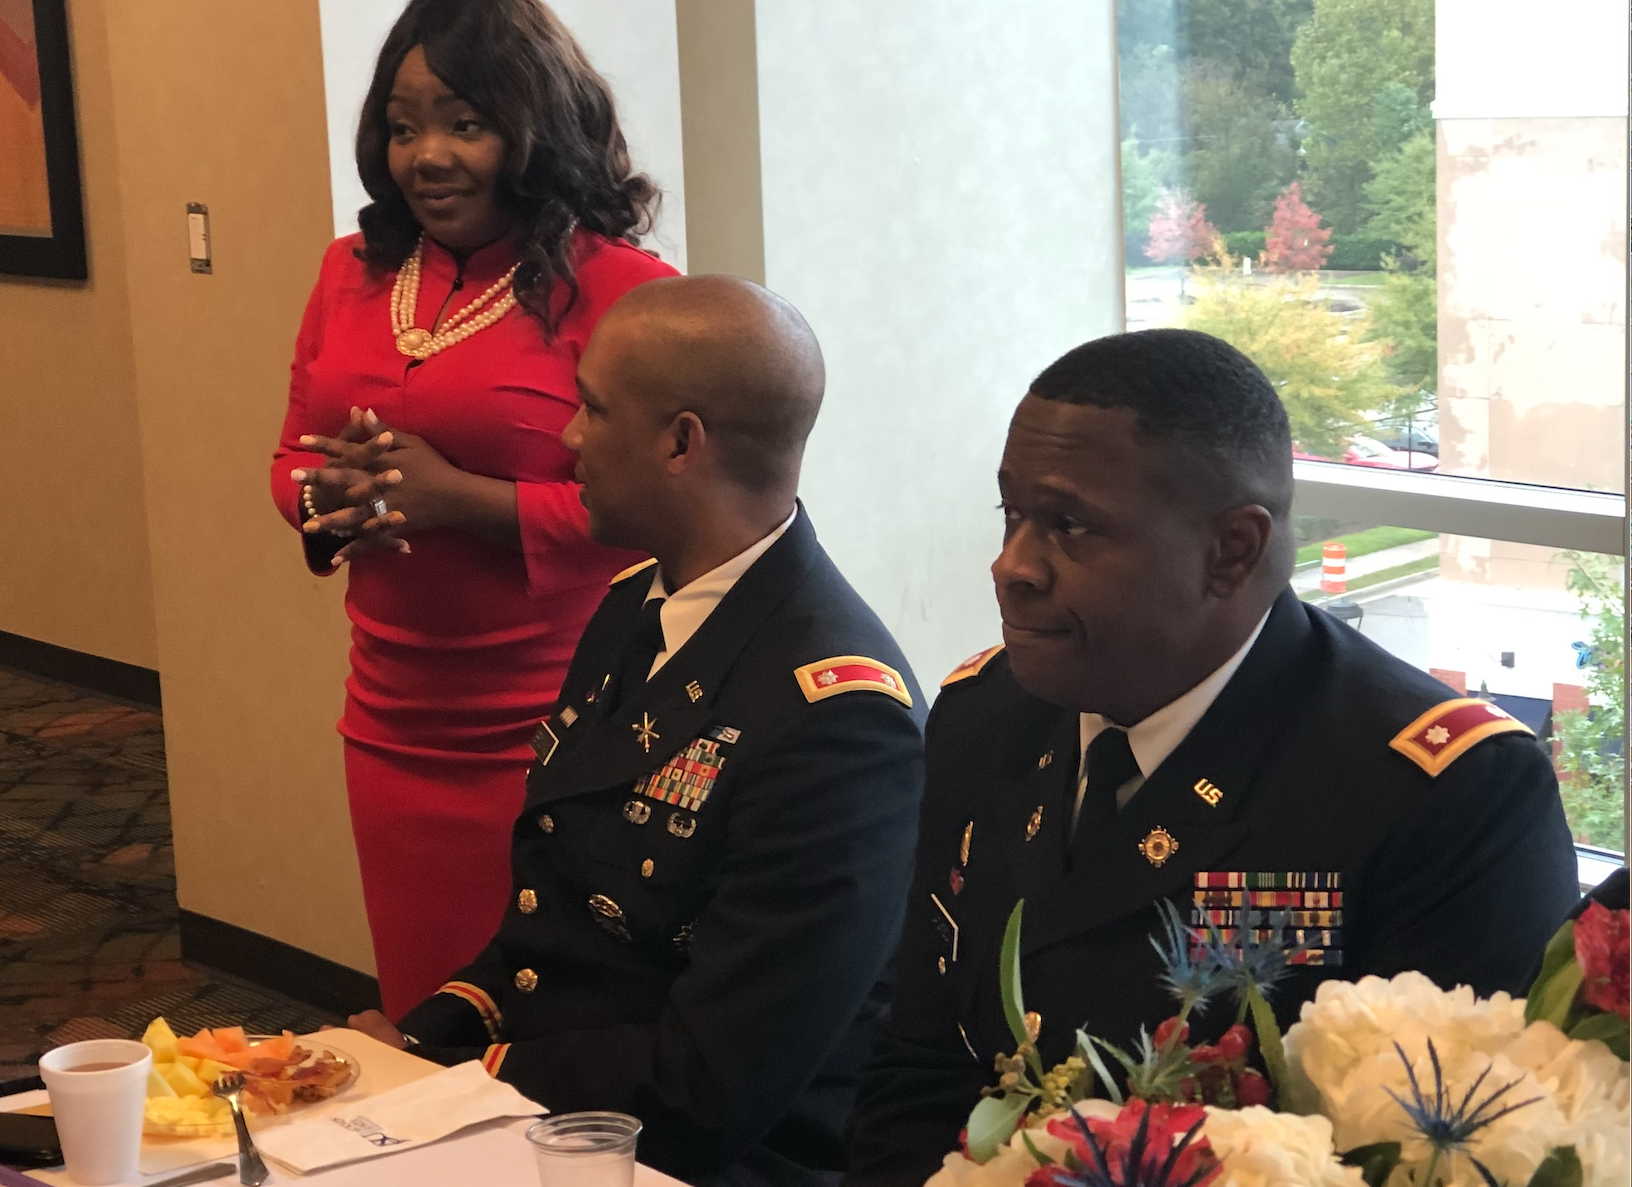 Dr. LaToya Reed, director of JSU's Veteran and Military Student Support, consults with Brookins  as the observance prepares to begin with keynote speaker Jackson, right. (Photo by L.A. Warren/JSU)